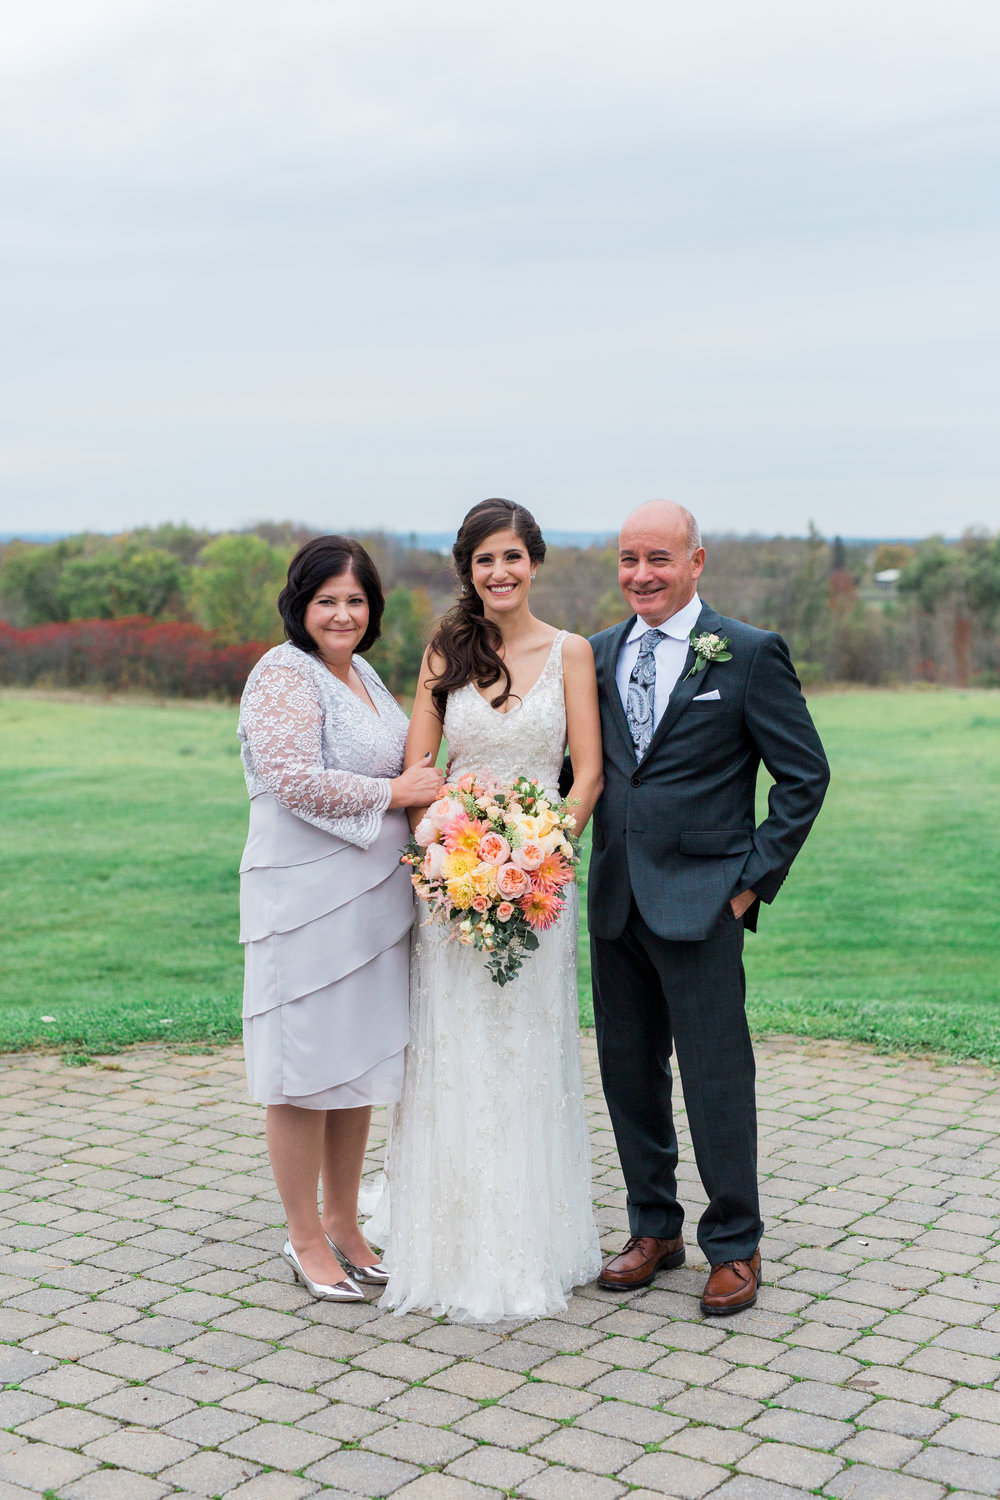 Amir-Golbazi-Danielle-Giroux-Photography_Toronto-Wedding_Cedarwood_Rachel-Paul_353.jpg